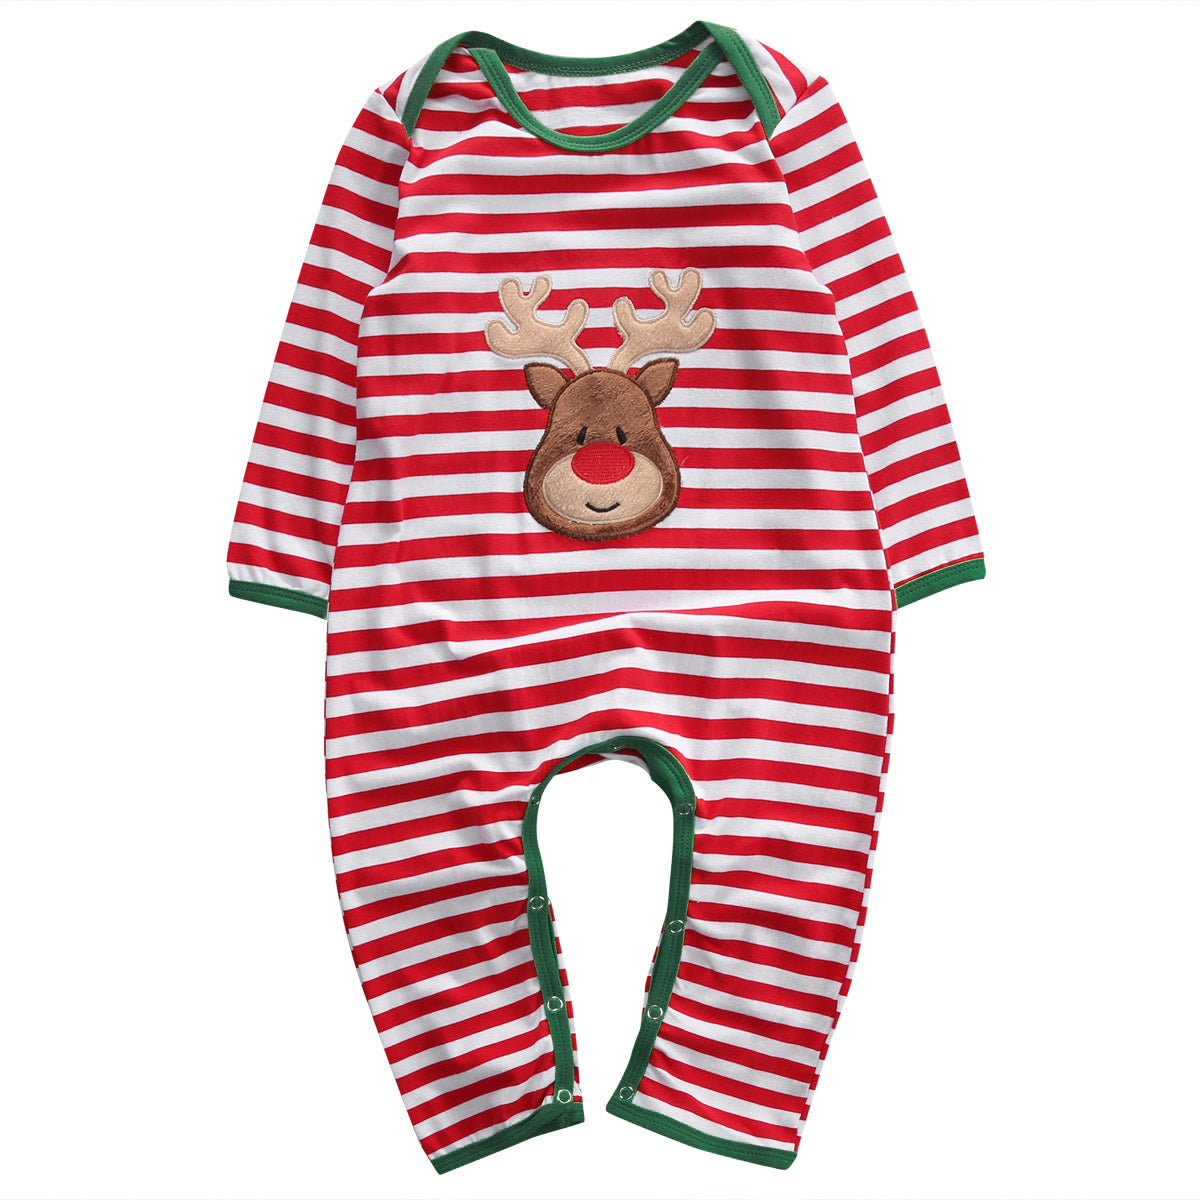 NEW Christmas Newborn Infant Baby Girl Boy Striped Deer Romper Jumpsuit Clothes